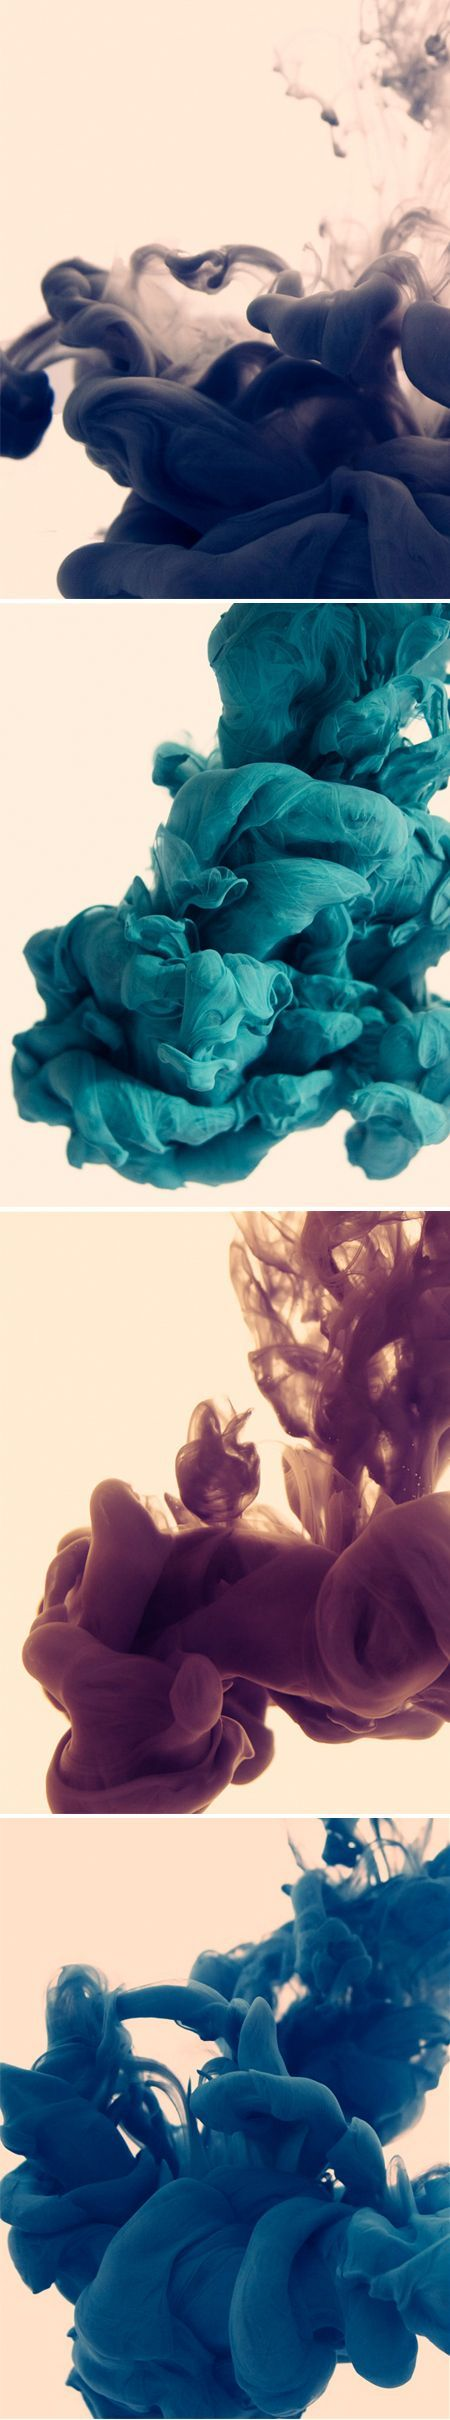 Alberto Seveso / Photographs of ink in water. #tempertrap